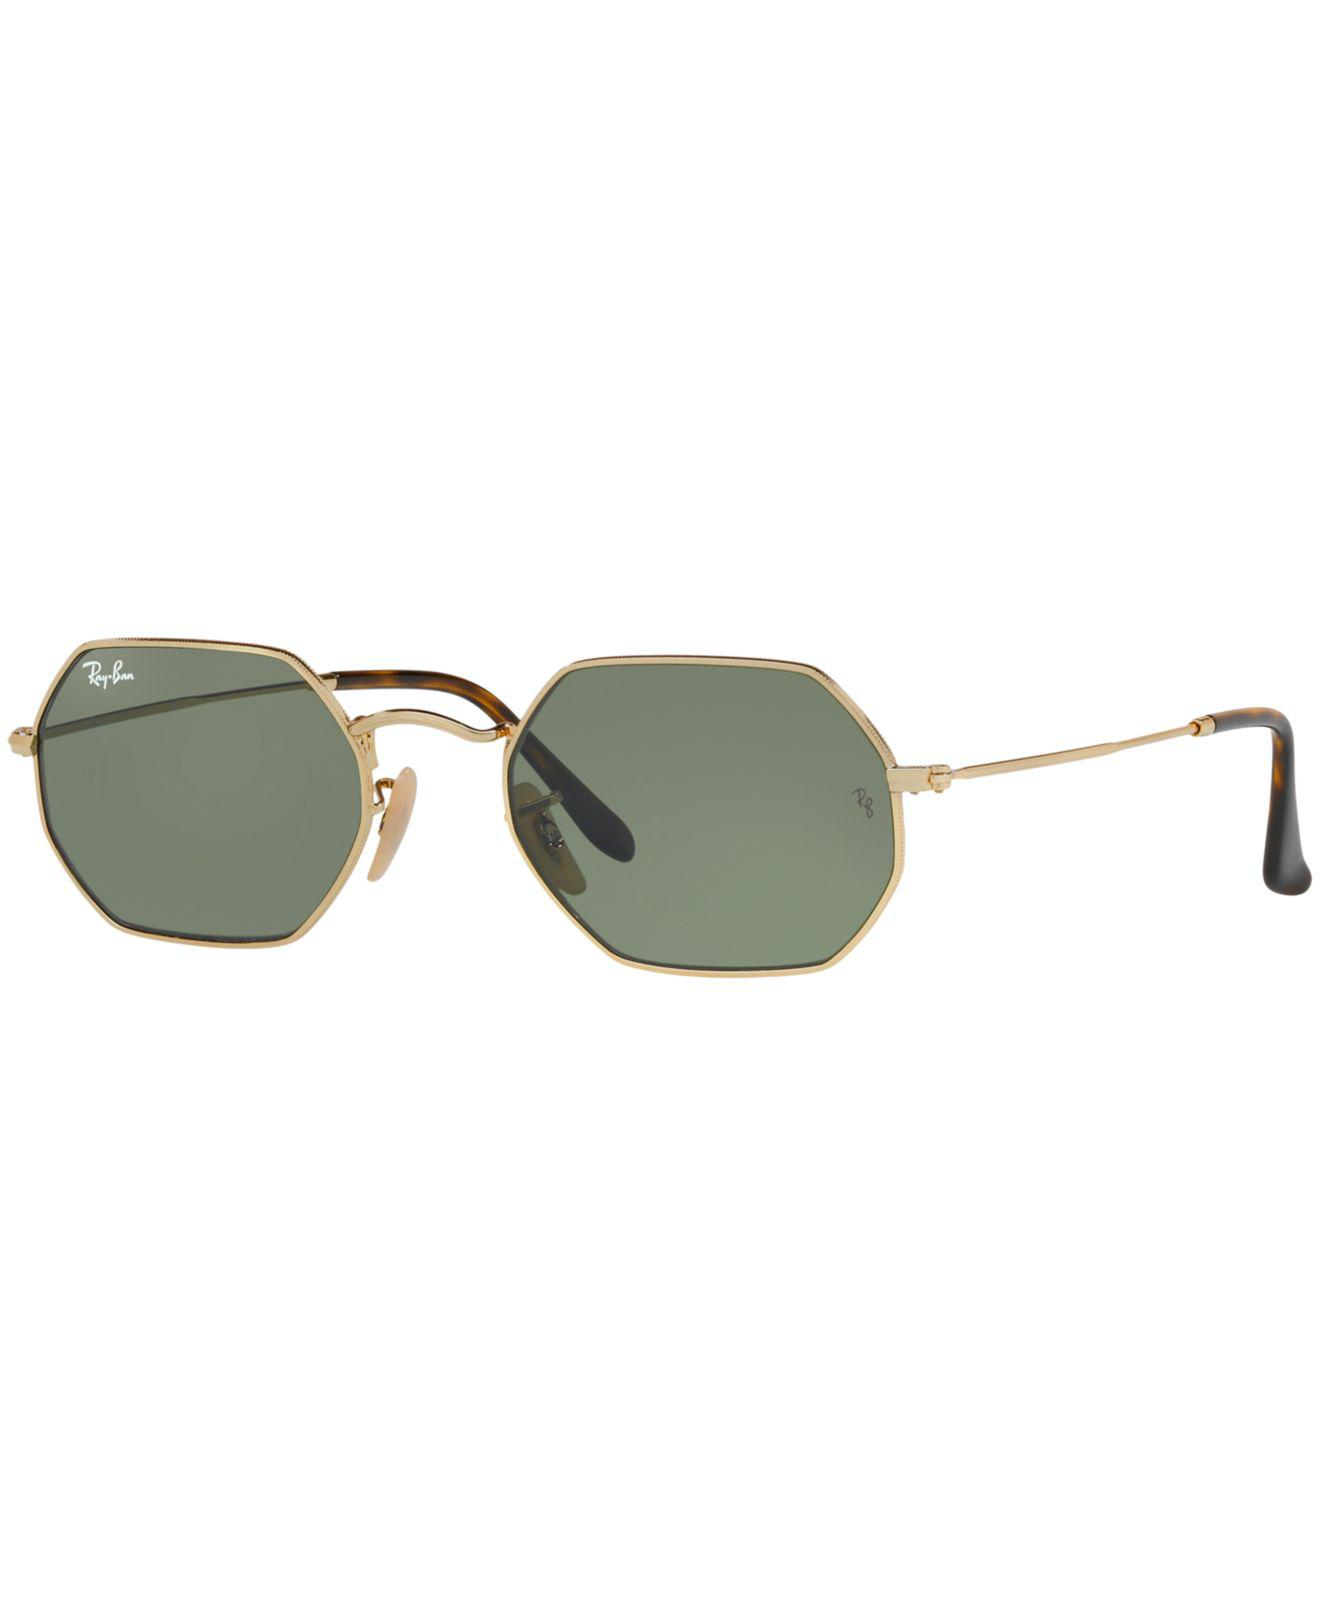 ece4228097 Ray-Ban. Women s Green Octagonal Flat Lens Sunglasses ...